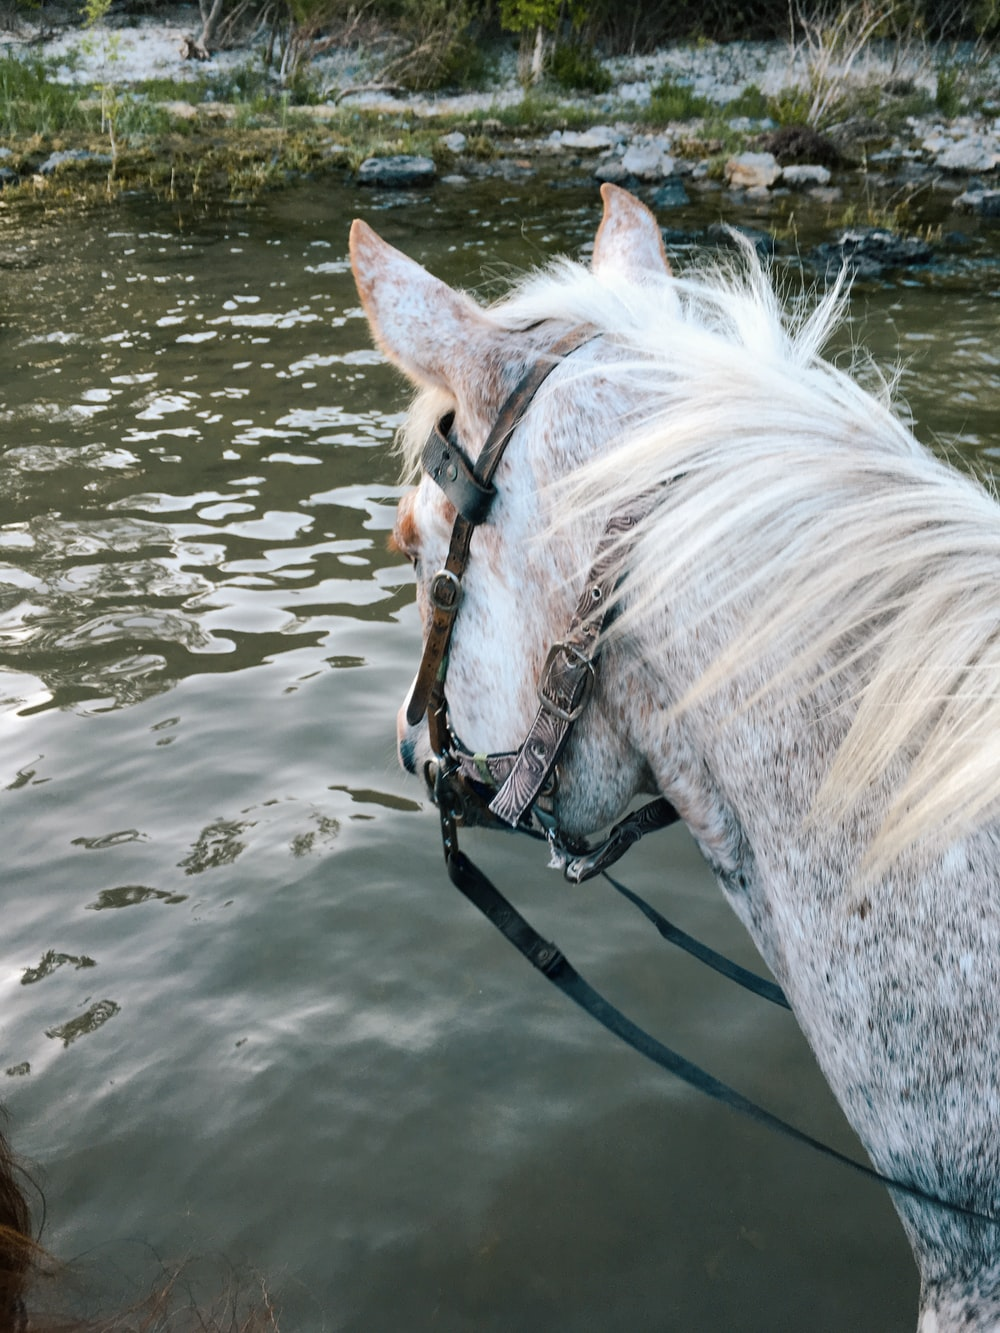 white horse on water during daytime